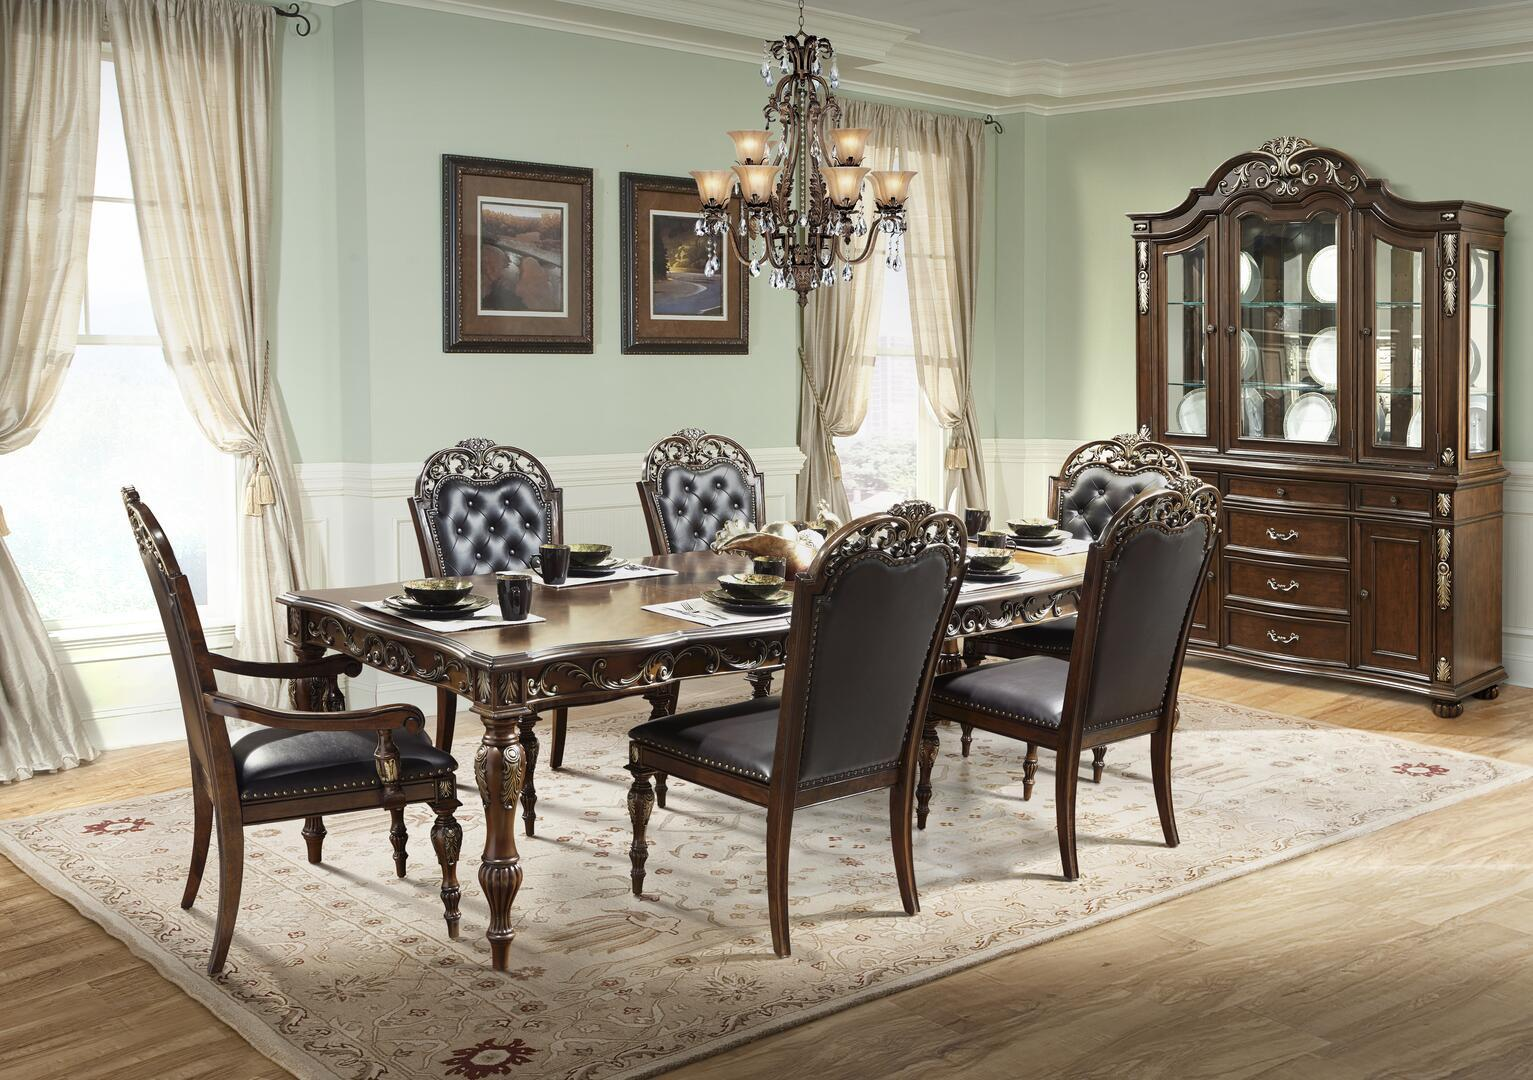 Traditional Cherry Faux Leather Dining Room Set 9 pcs Cosmos Furniture Rosanna-Set-9